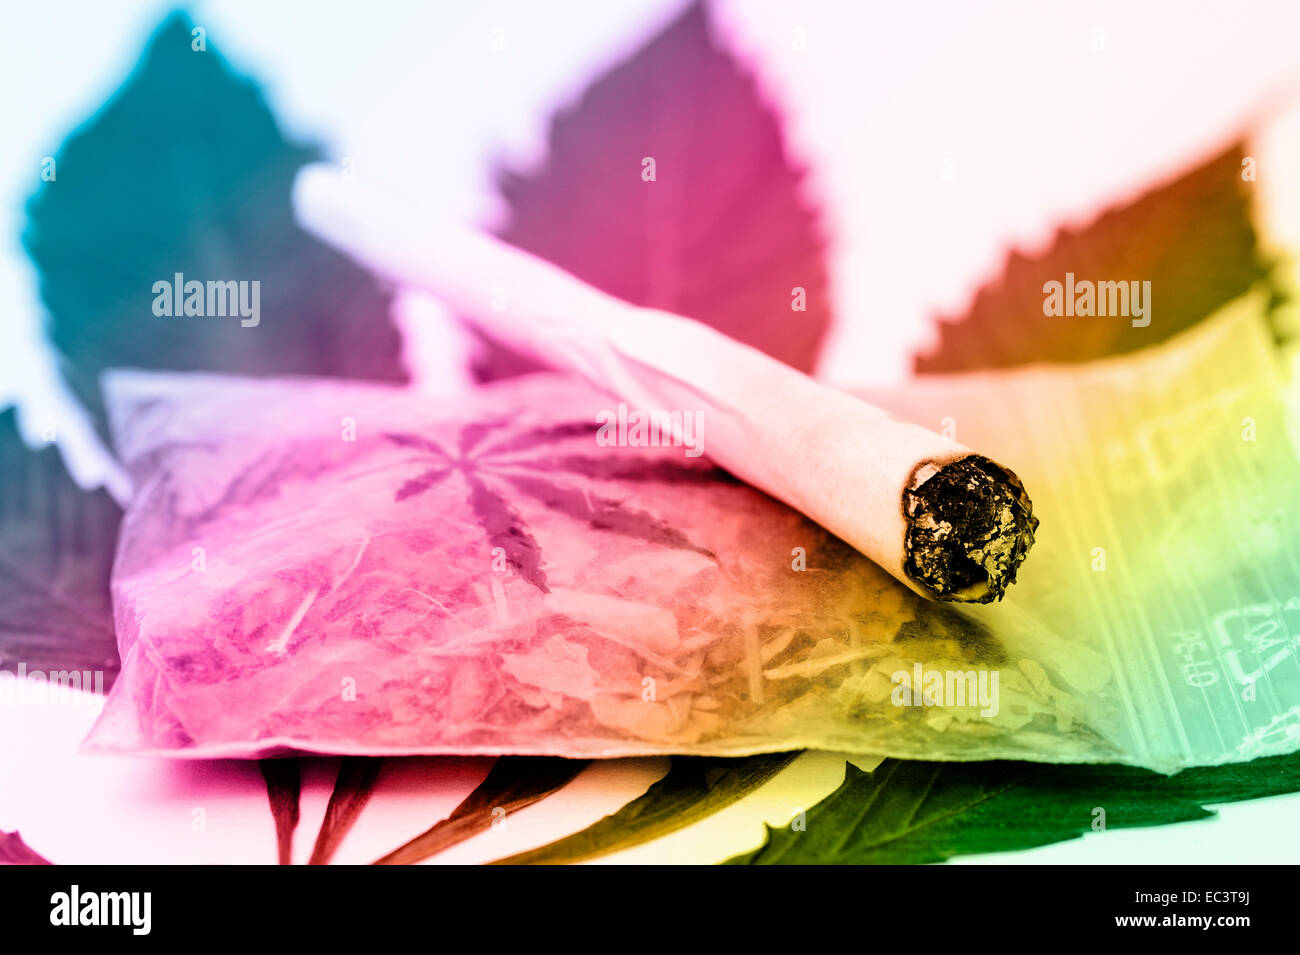 Joint on cannabis leaf - Stock Image